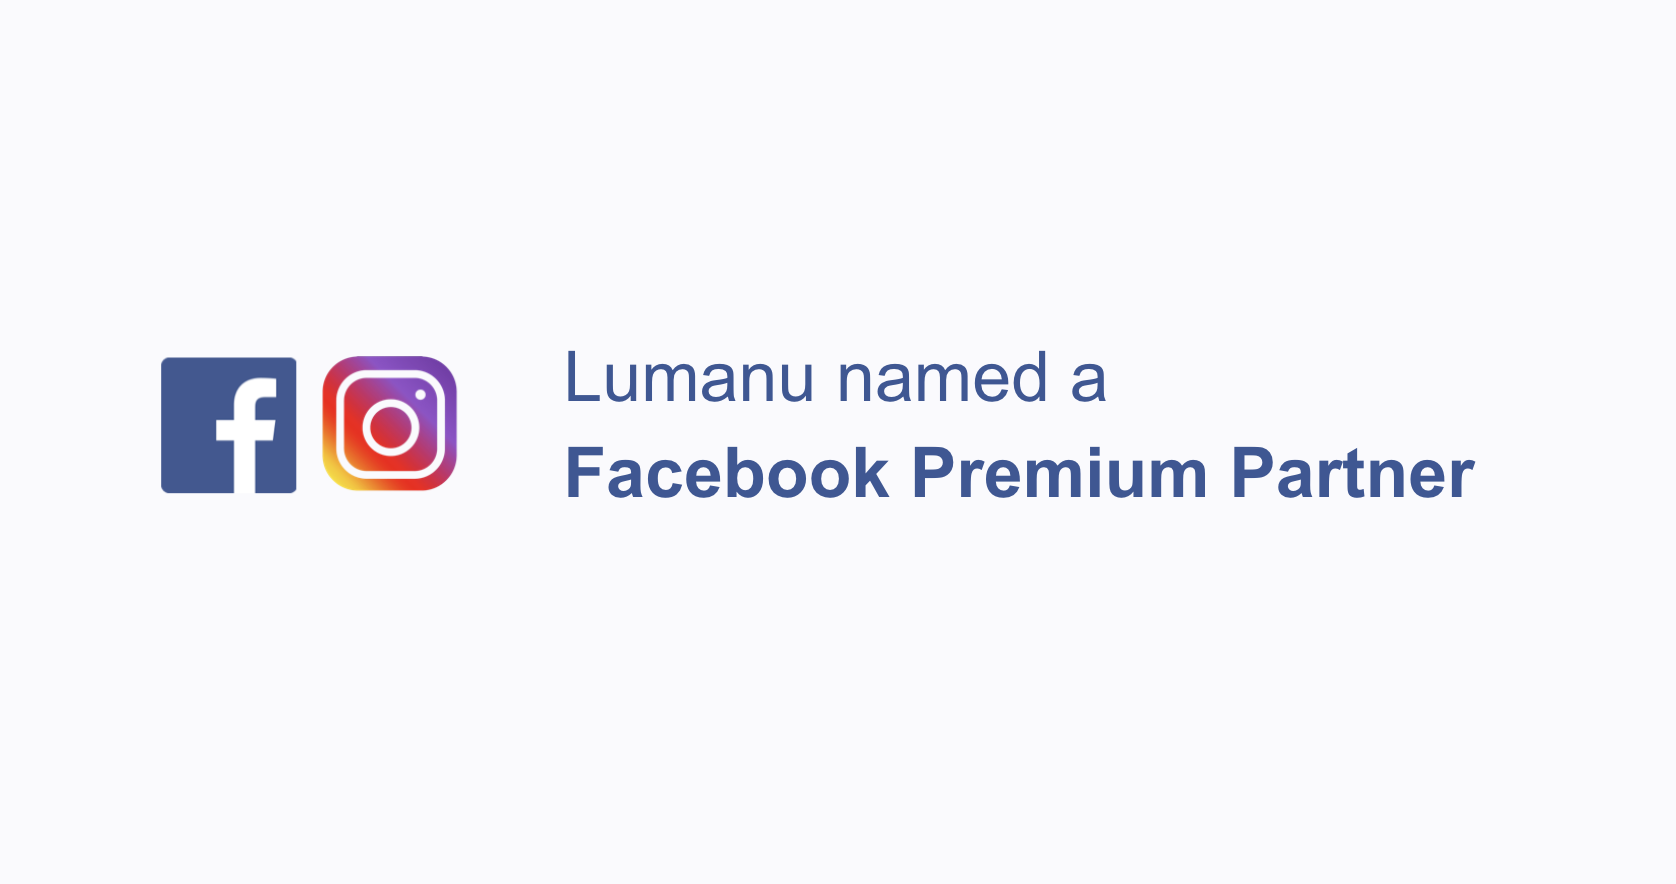 We are thrilled to announce that only 2 months after Lumanu was named a Facebook Marketing Partner, Facebook has recognized Lumanu as a Premium Partner.